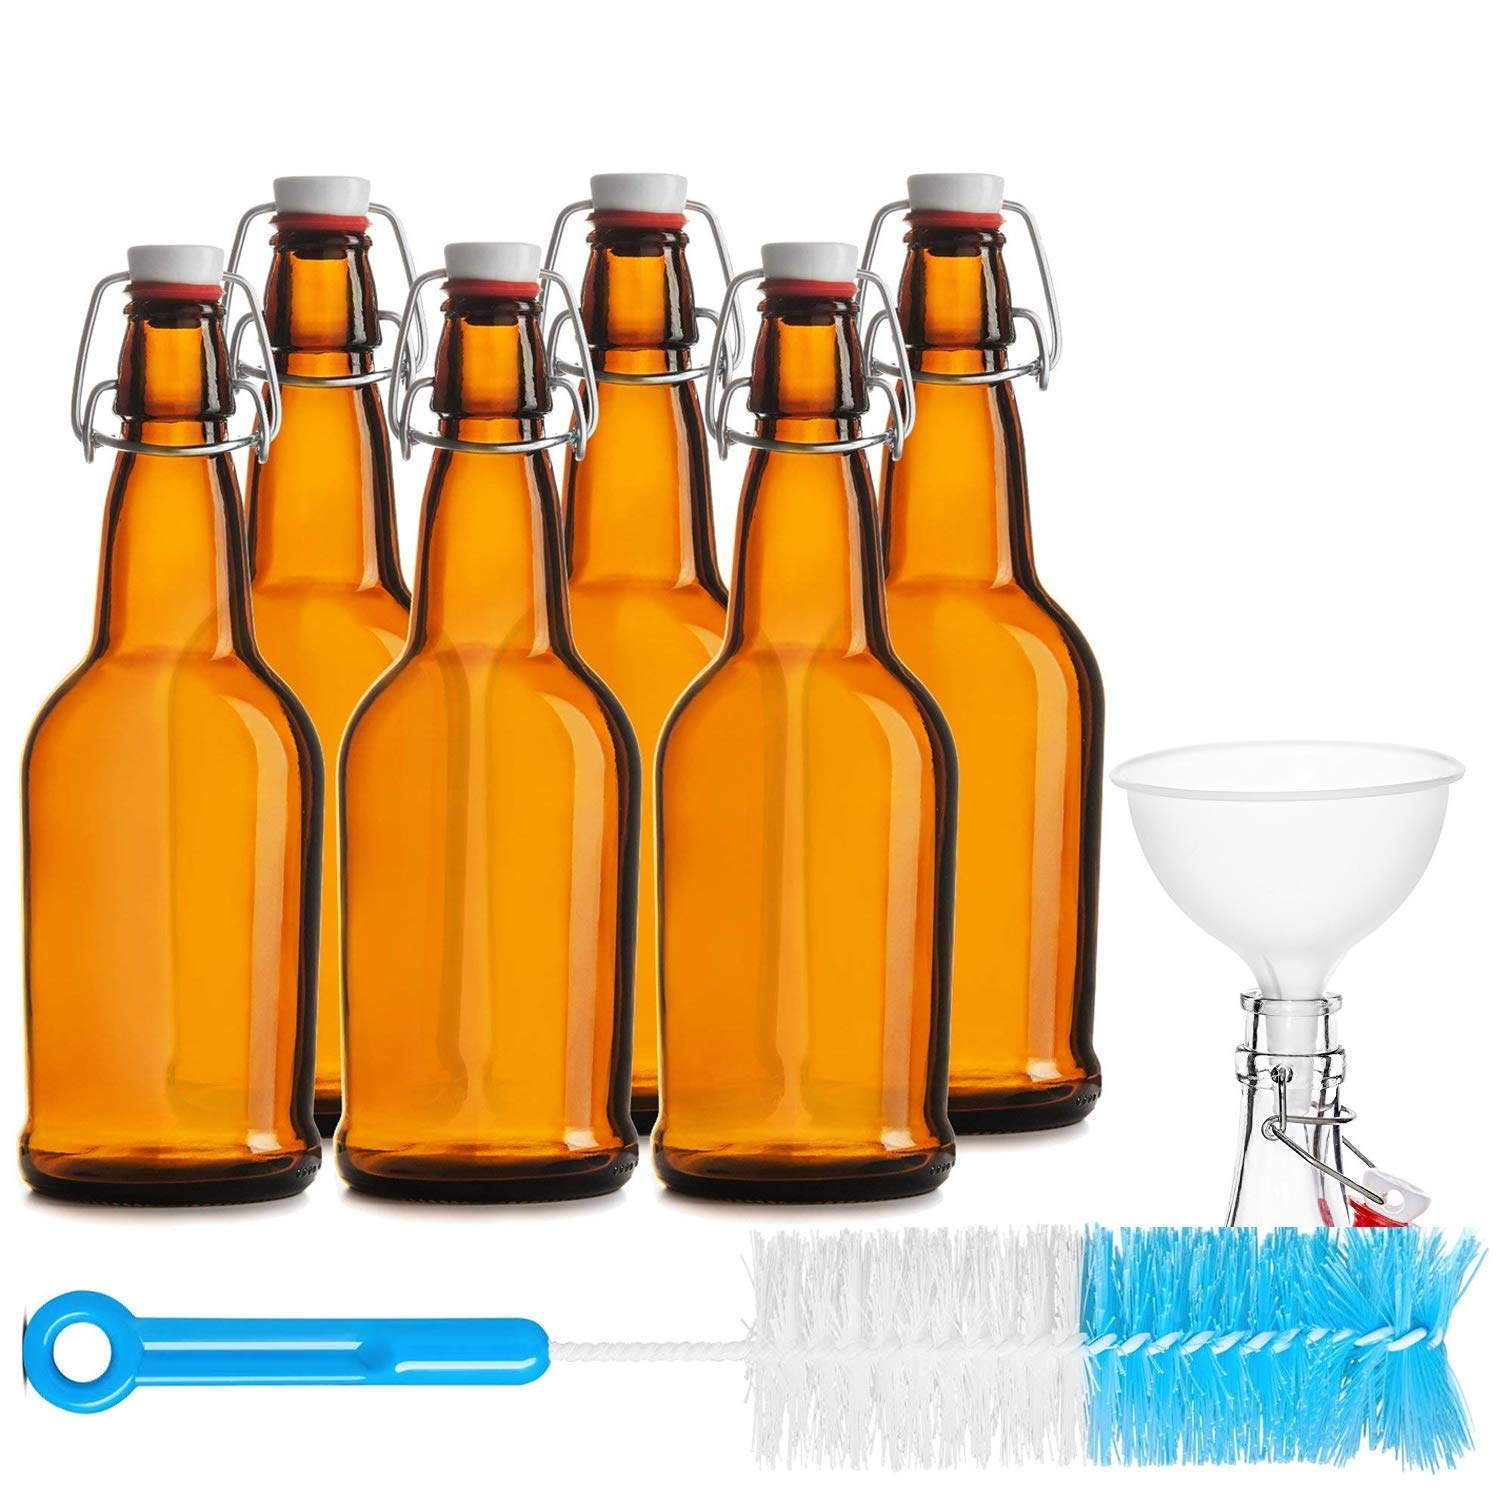 Chefs Star Case Of 6-16 Oz. Easy Cap Beer Bottles With Funnel And Cleaning Brush - Amber Chef's Star